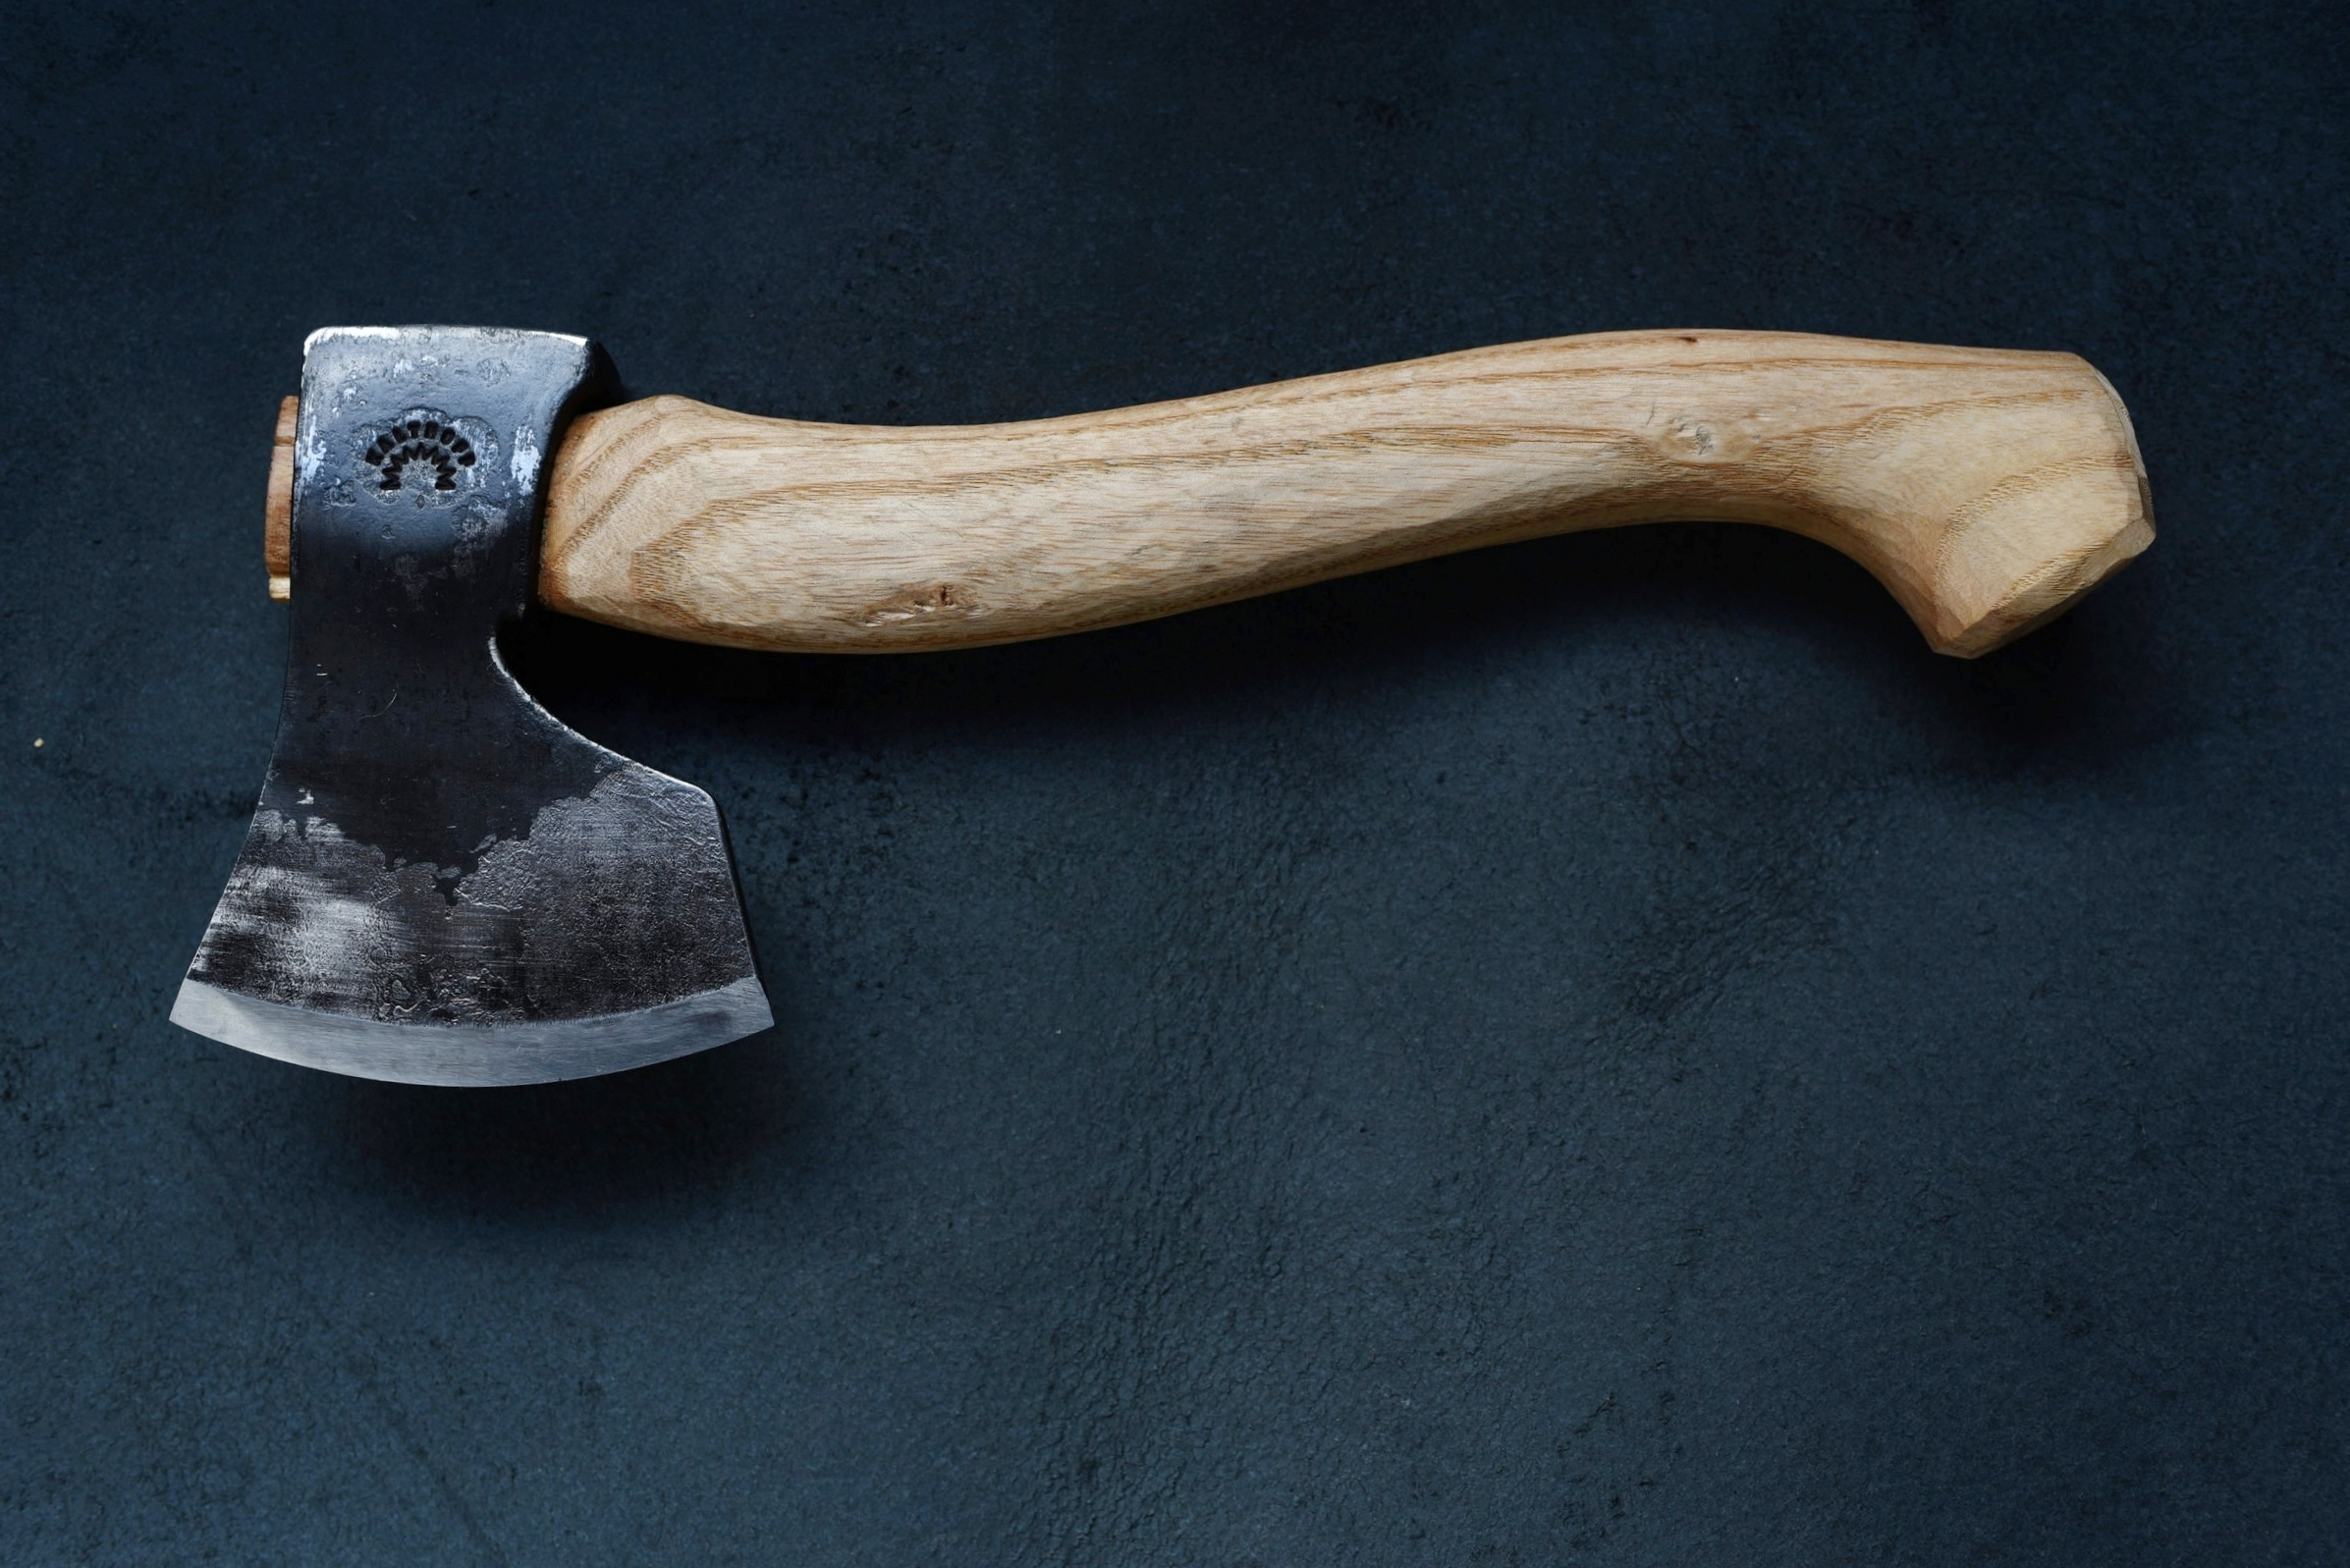 Life time guarantee - We are proud that these axes will last generations with the proper care. Materials and workmanship have life time guarantee.